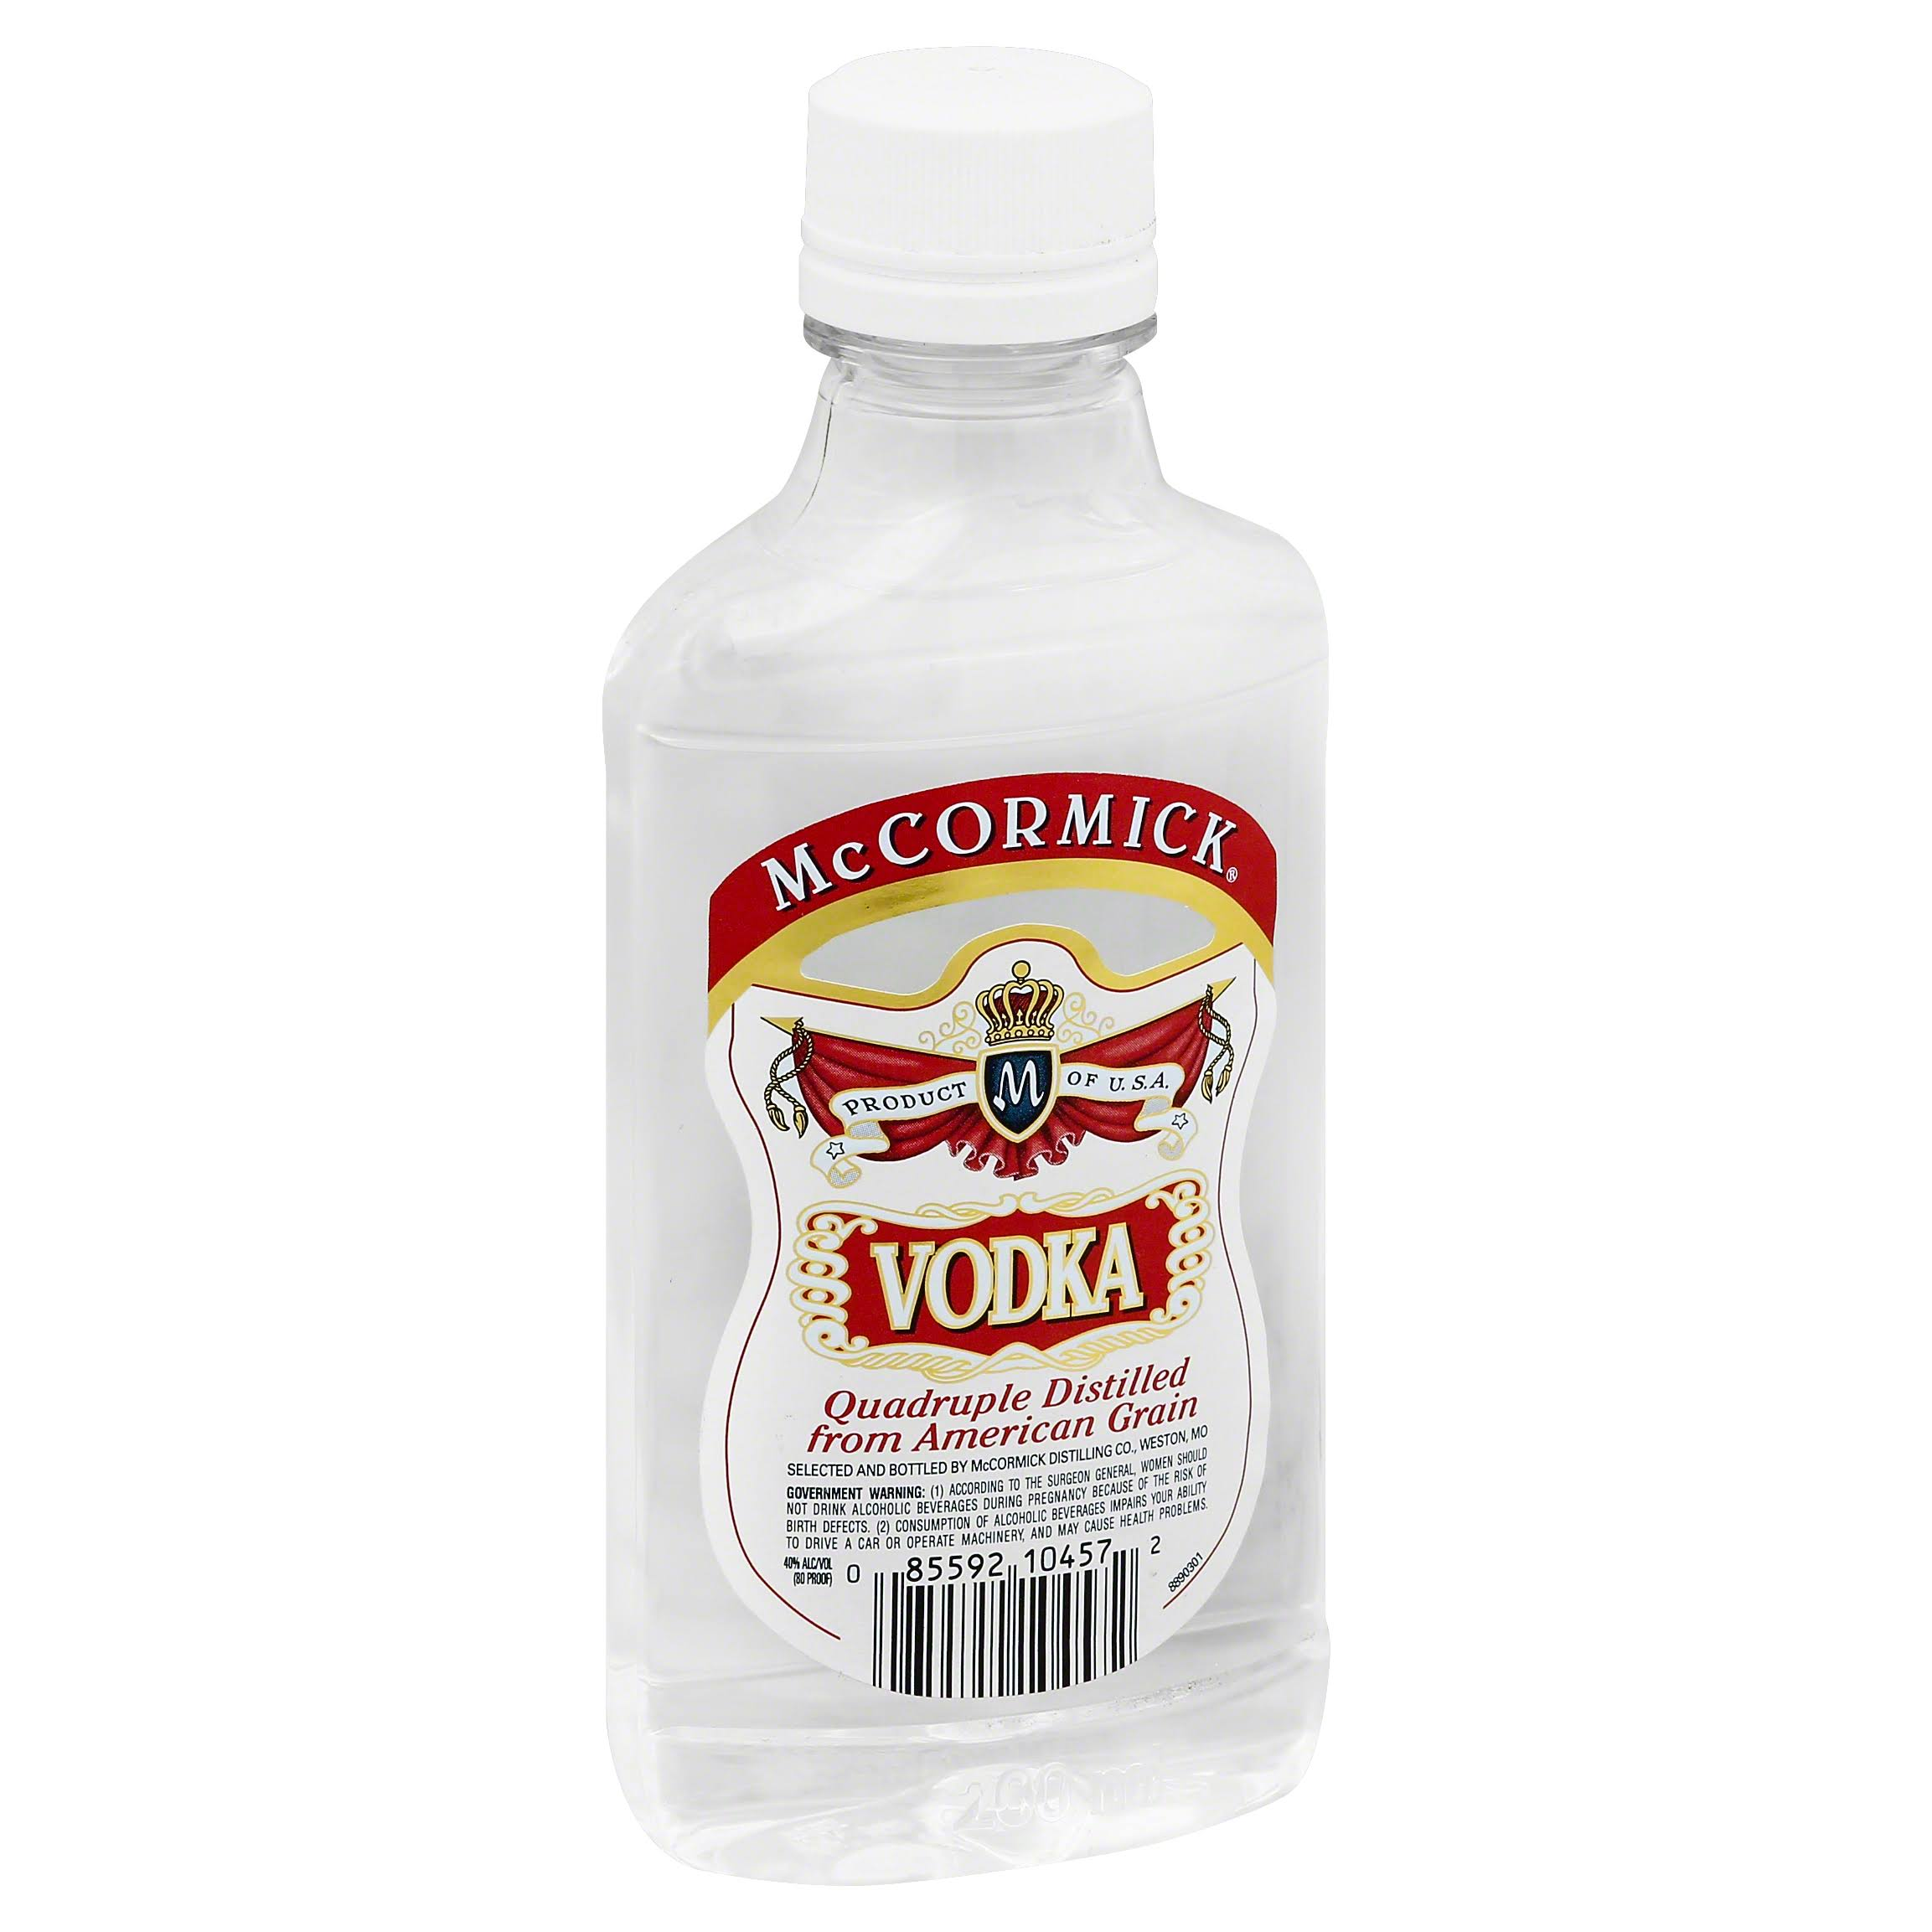 McCormick Vodka - 200 ml